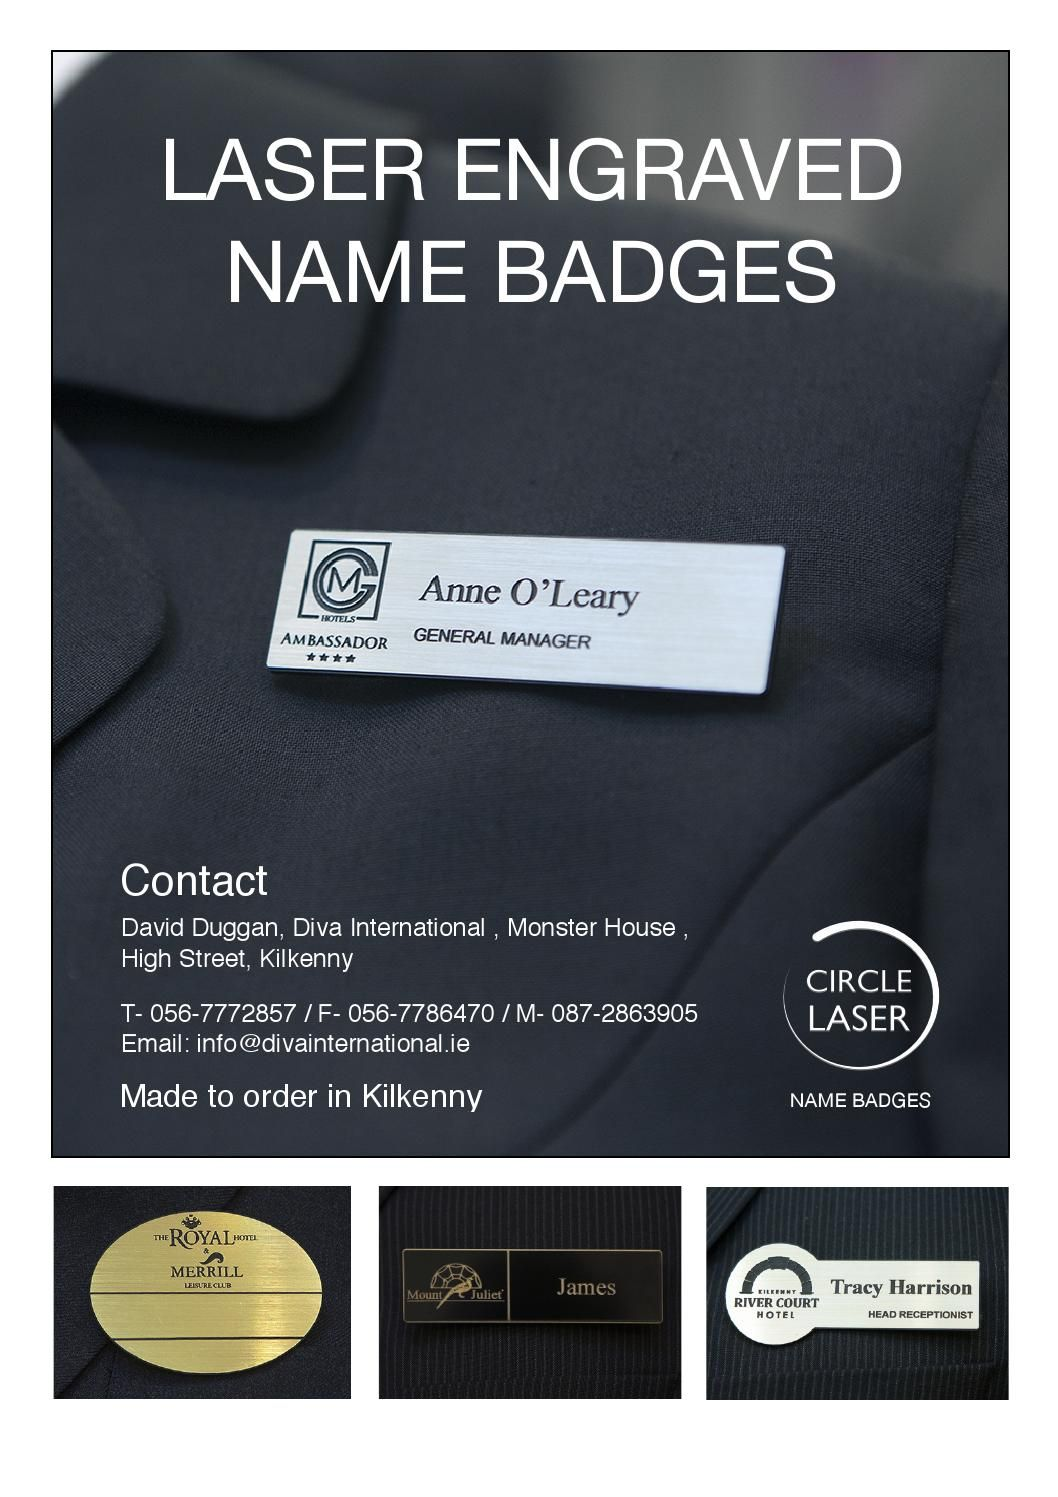 Laser engraved name badges based in kilkenny ireland we supply laser engraved name badges based in kilkenny ireland we supply bespoke name badges reheart Images